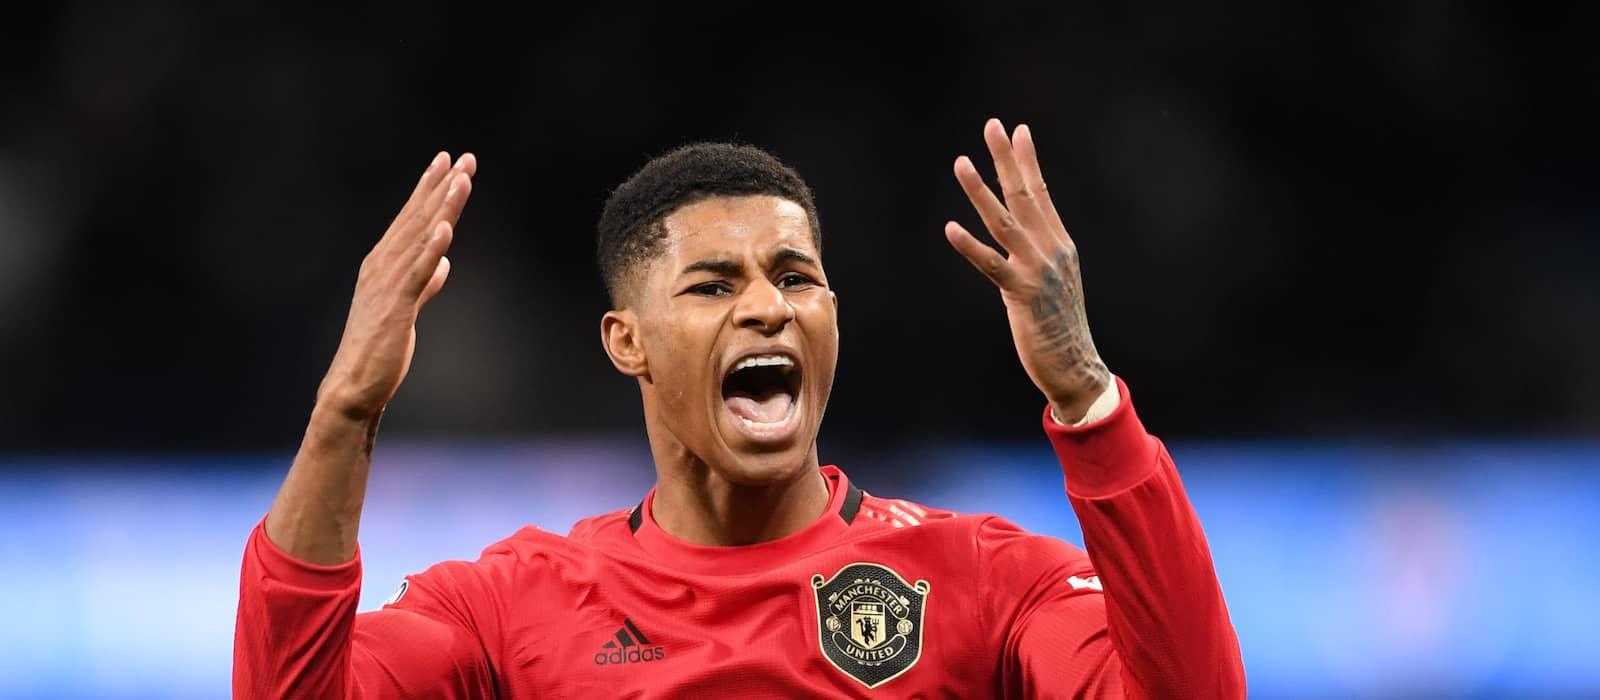 Marcus Rashford admits confusion over some teammates' behaviour